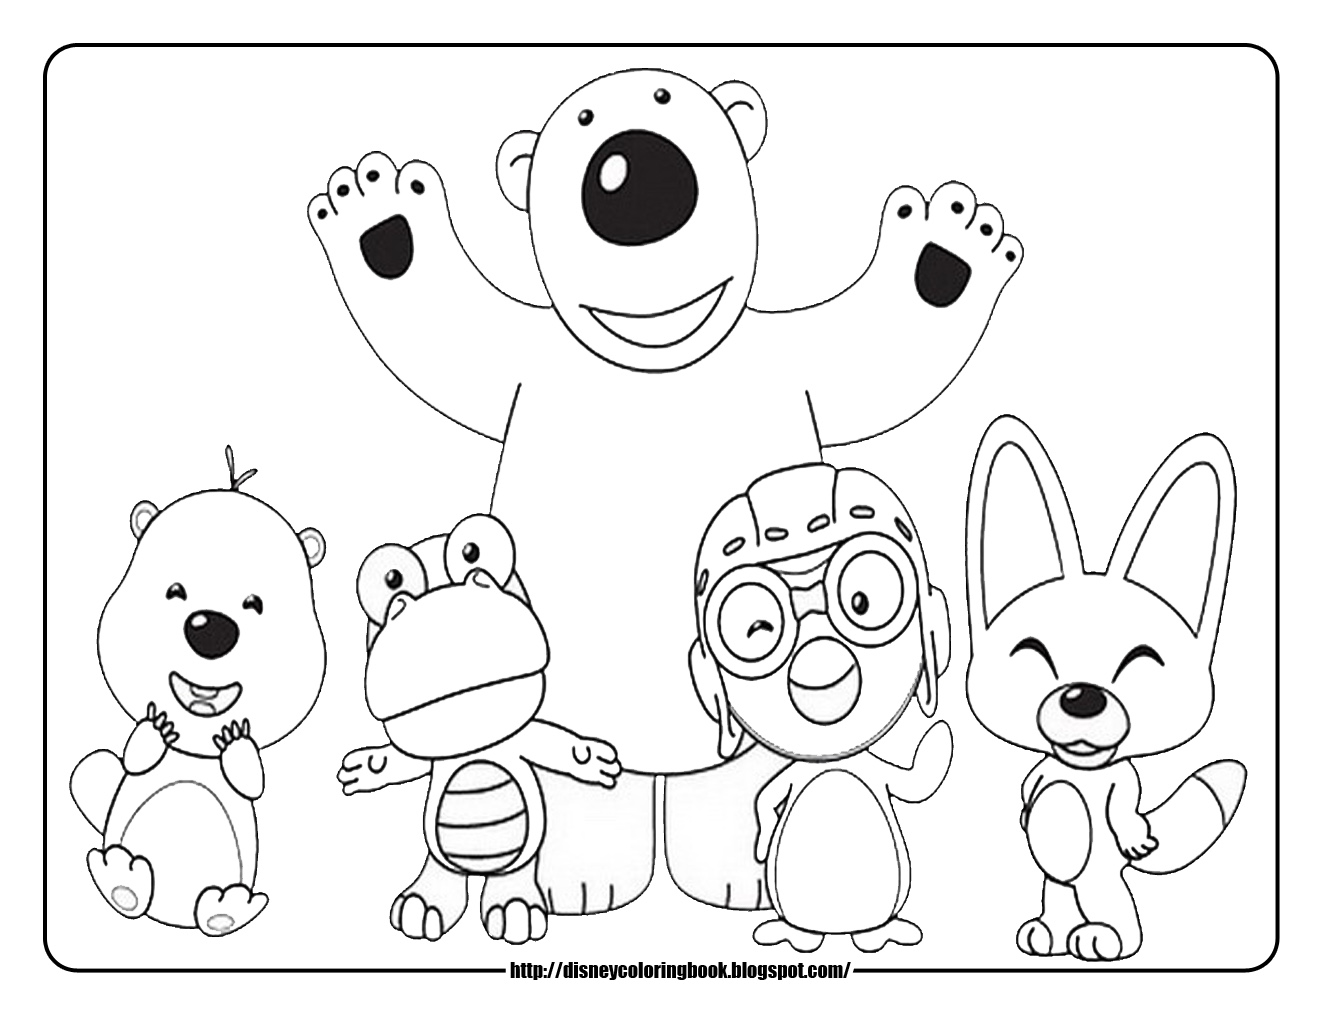 Disney Coloring Pages And Sheets For Kids Pororo The